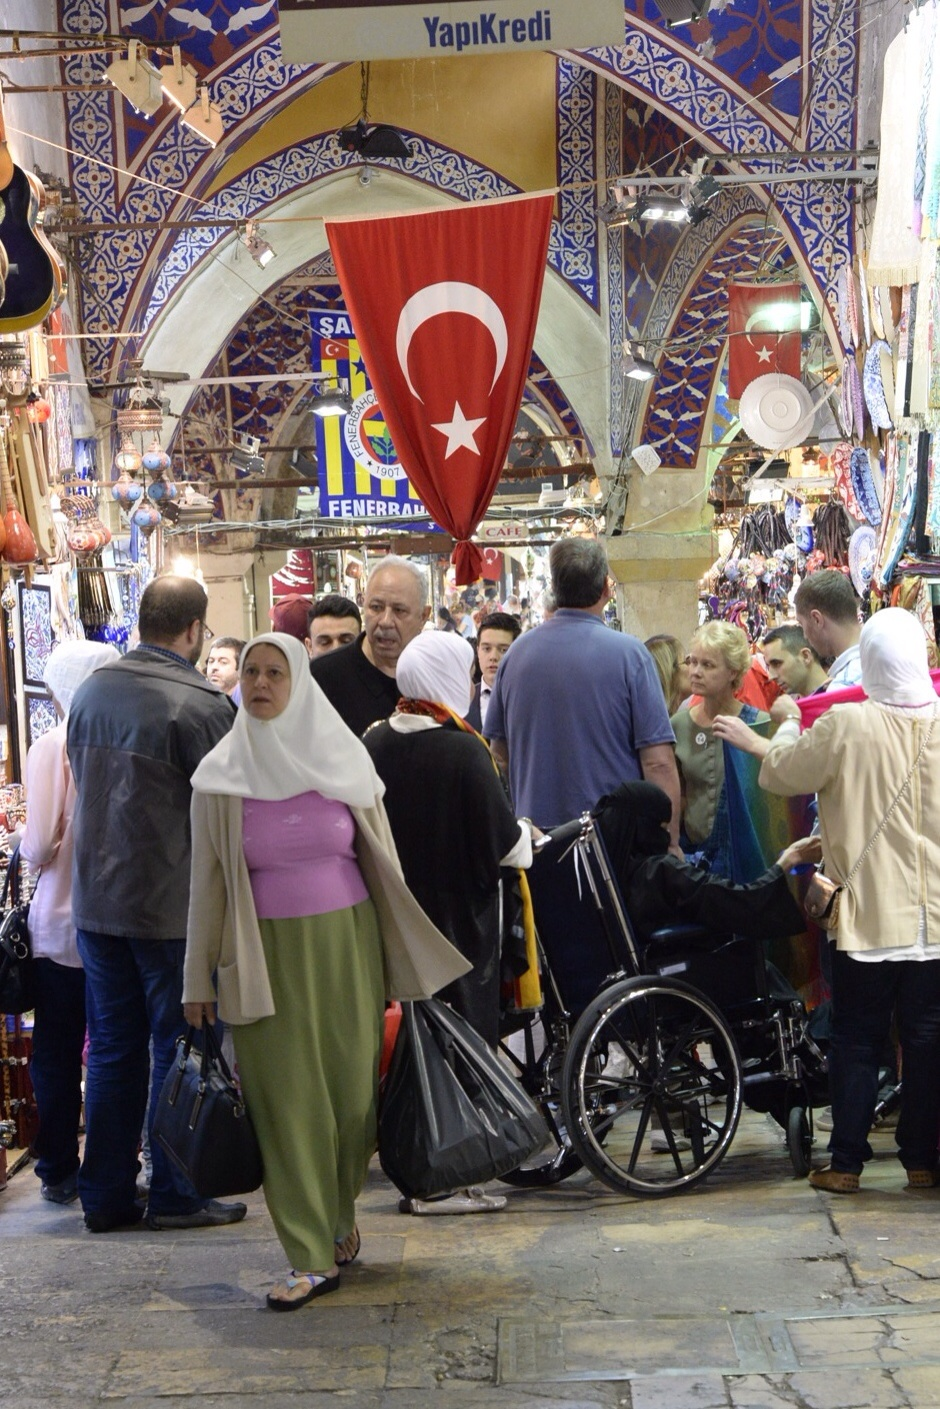 The Grand Bazaar is nearly always crowded with people from many places as well as locals from around the corner.